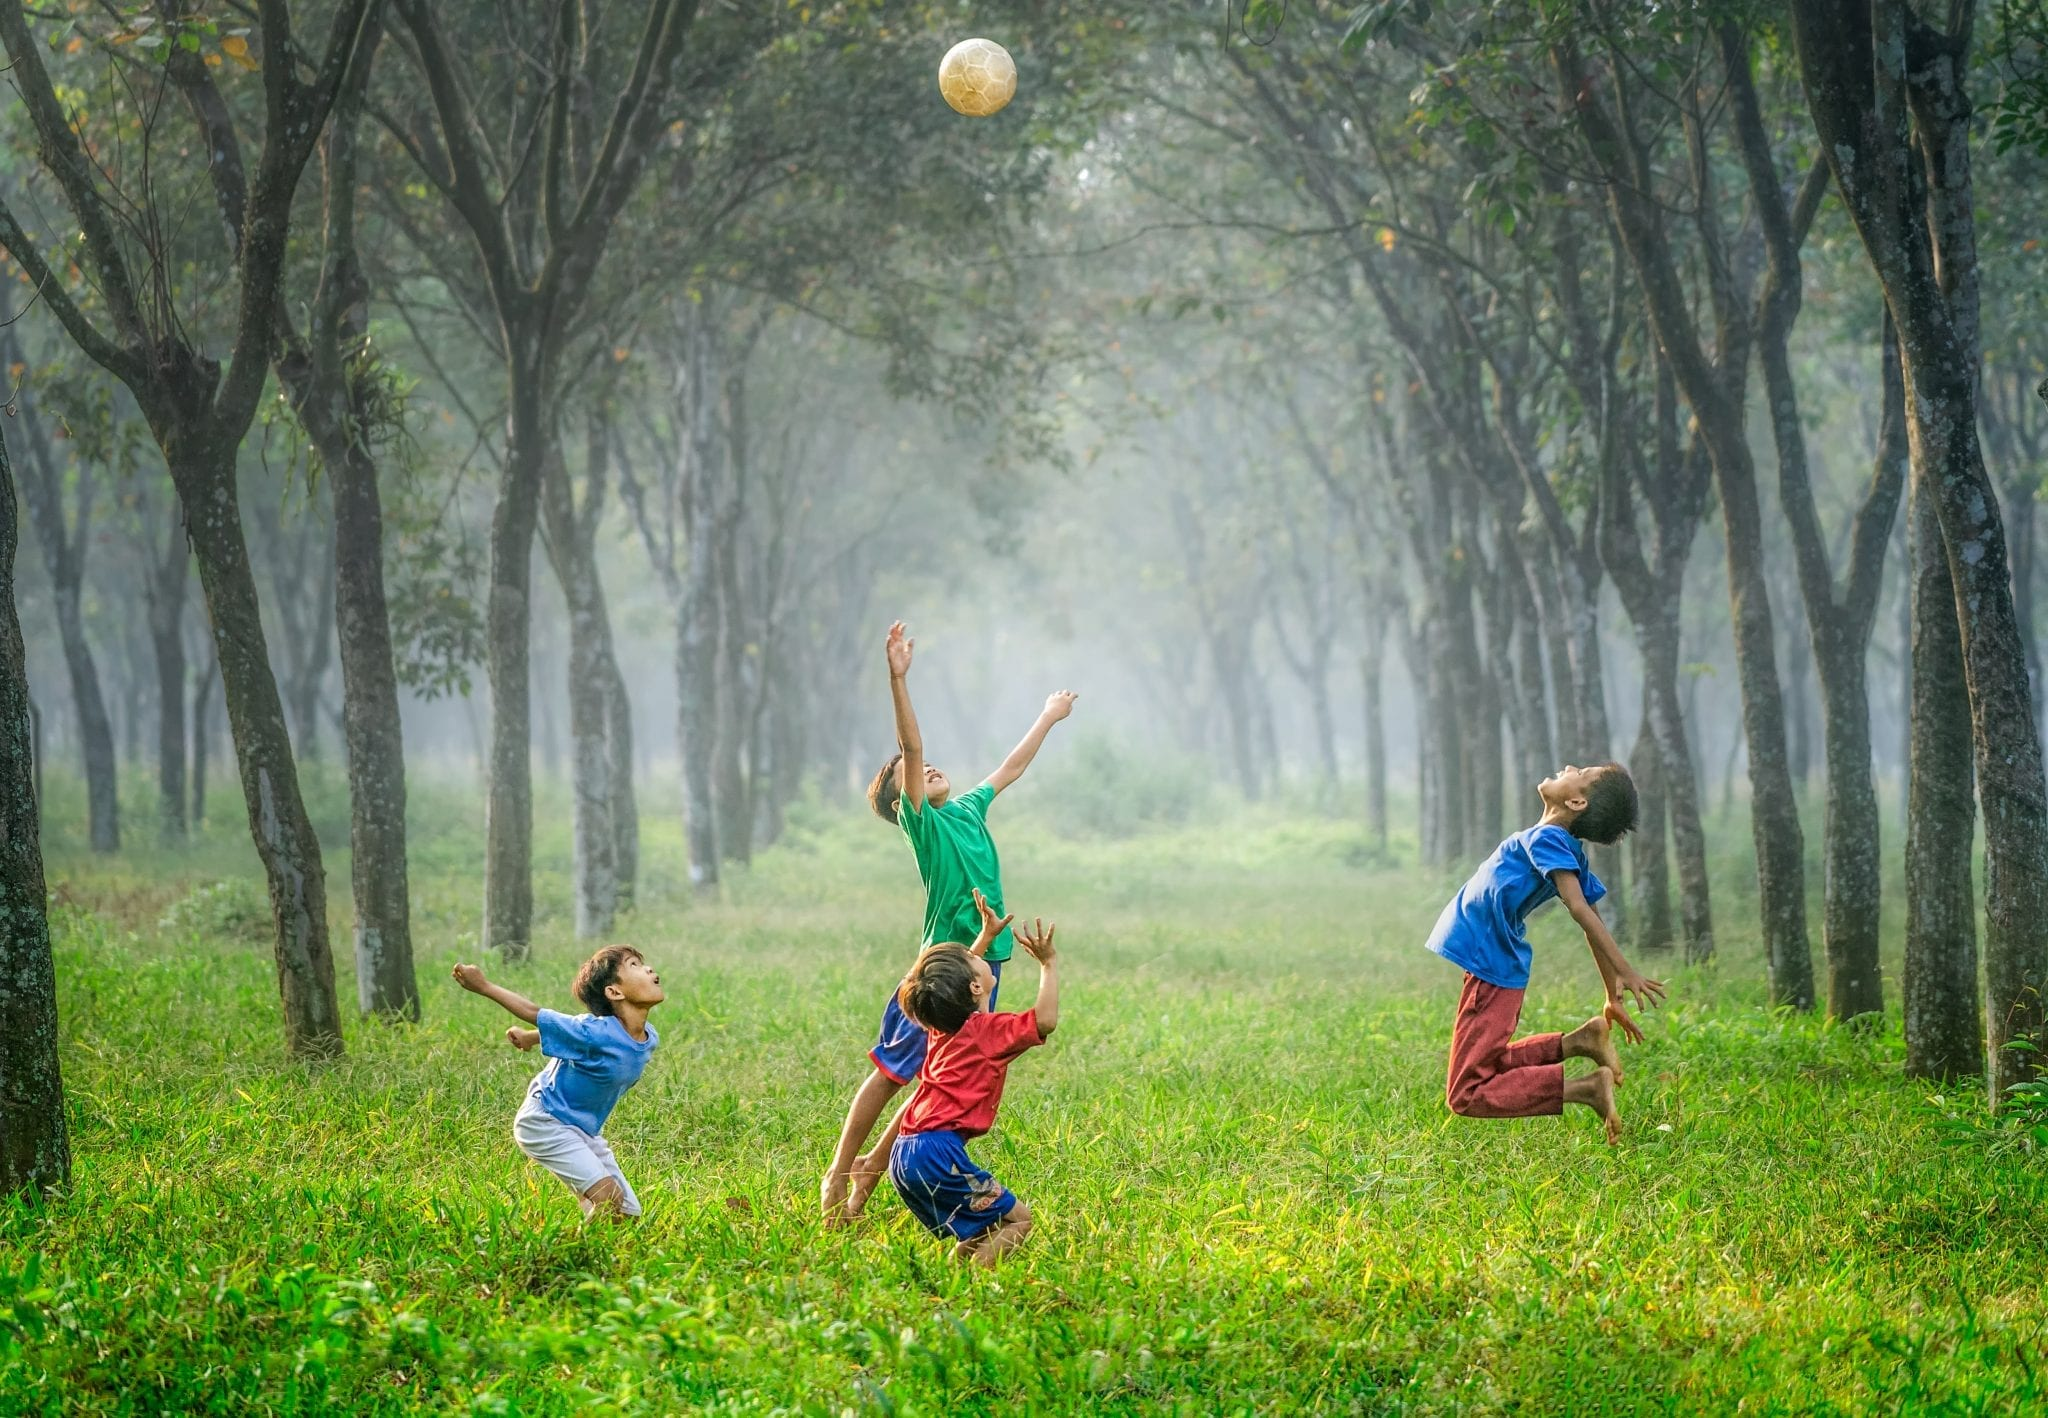 four children jumping in grass in a forest